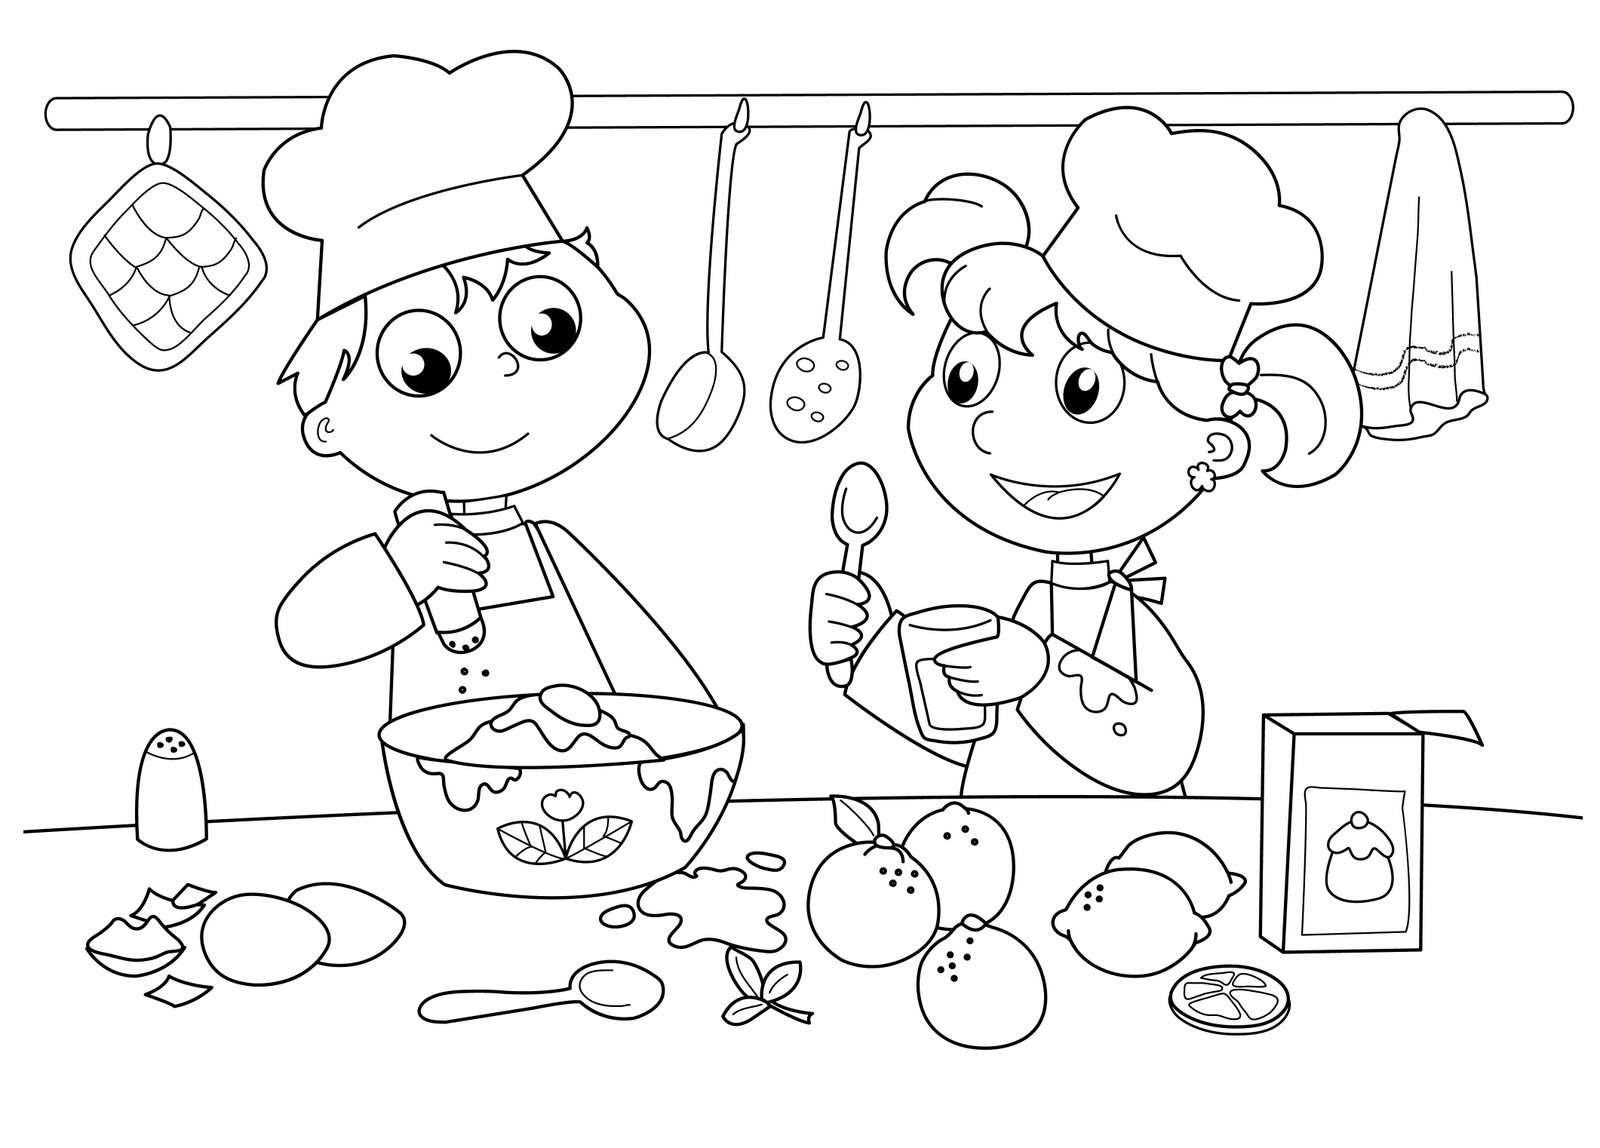 Baking clipart child baking Pages Pages Coloring Children Coloring